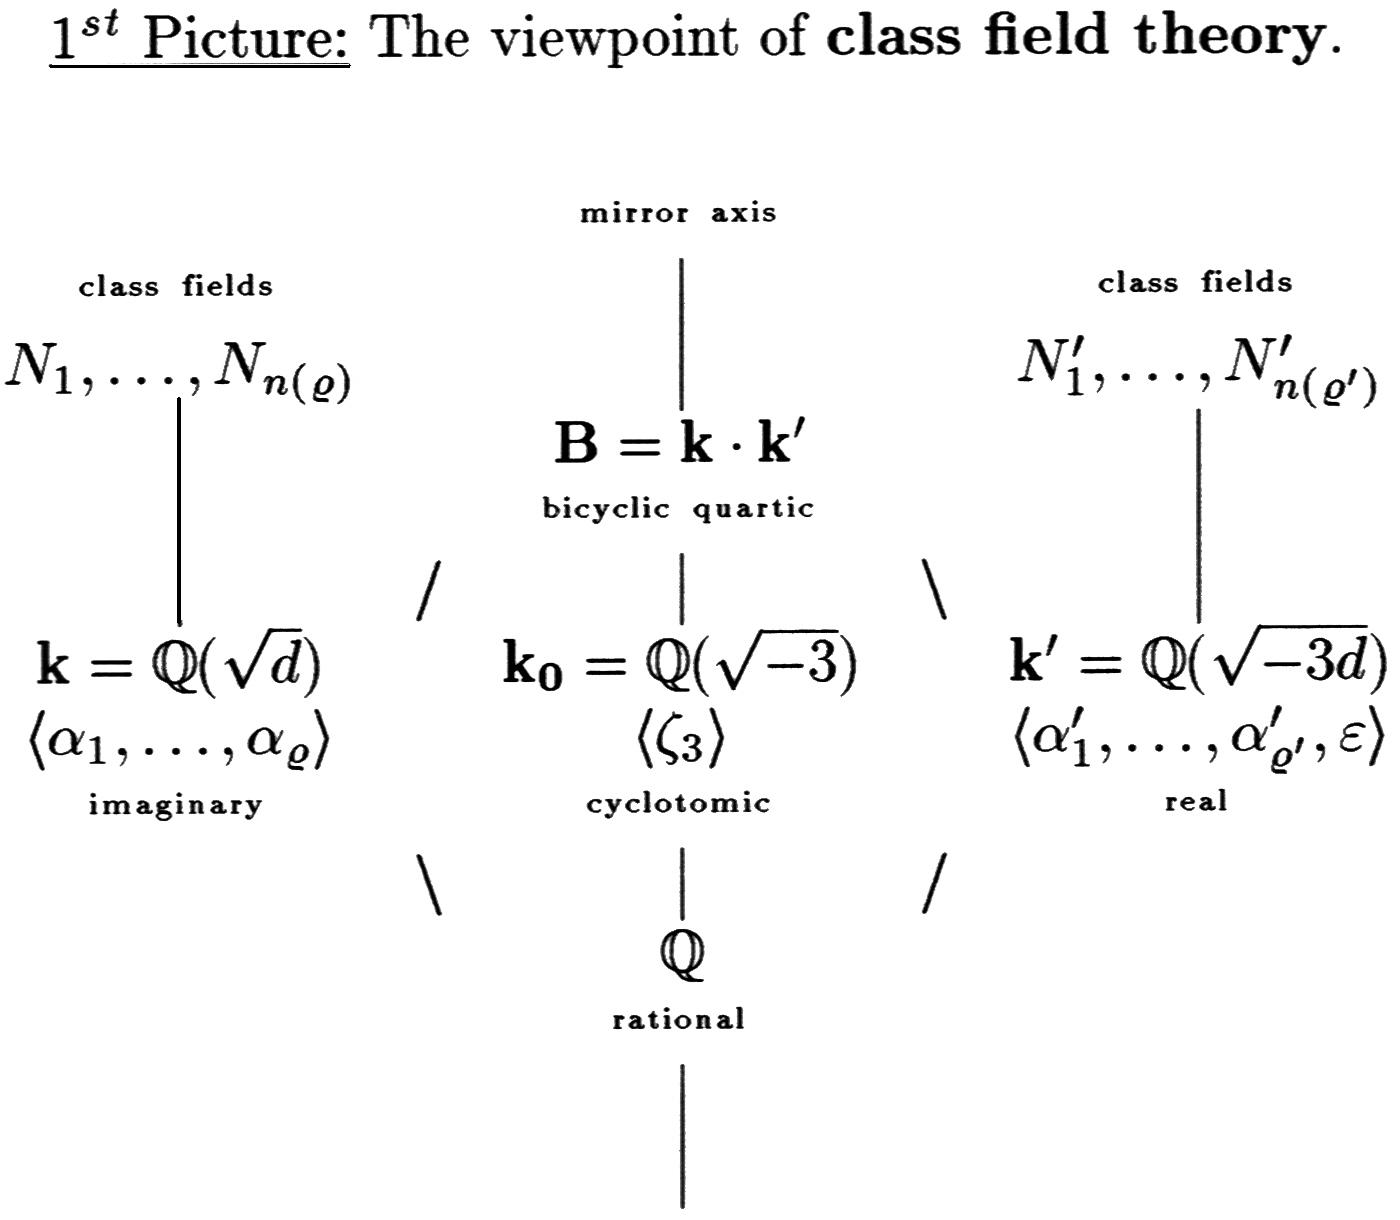 Class Field Diagram for Scholz's Mirror Theorem